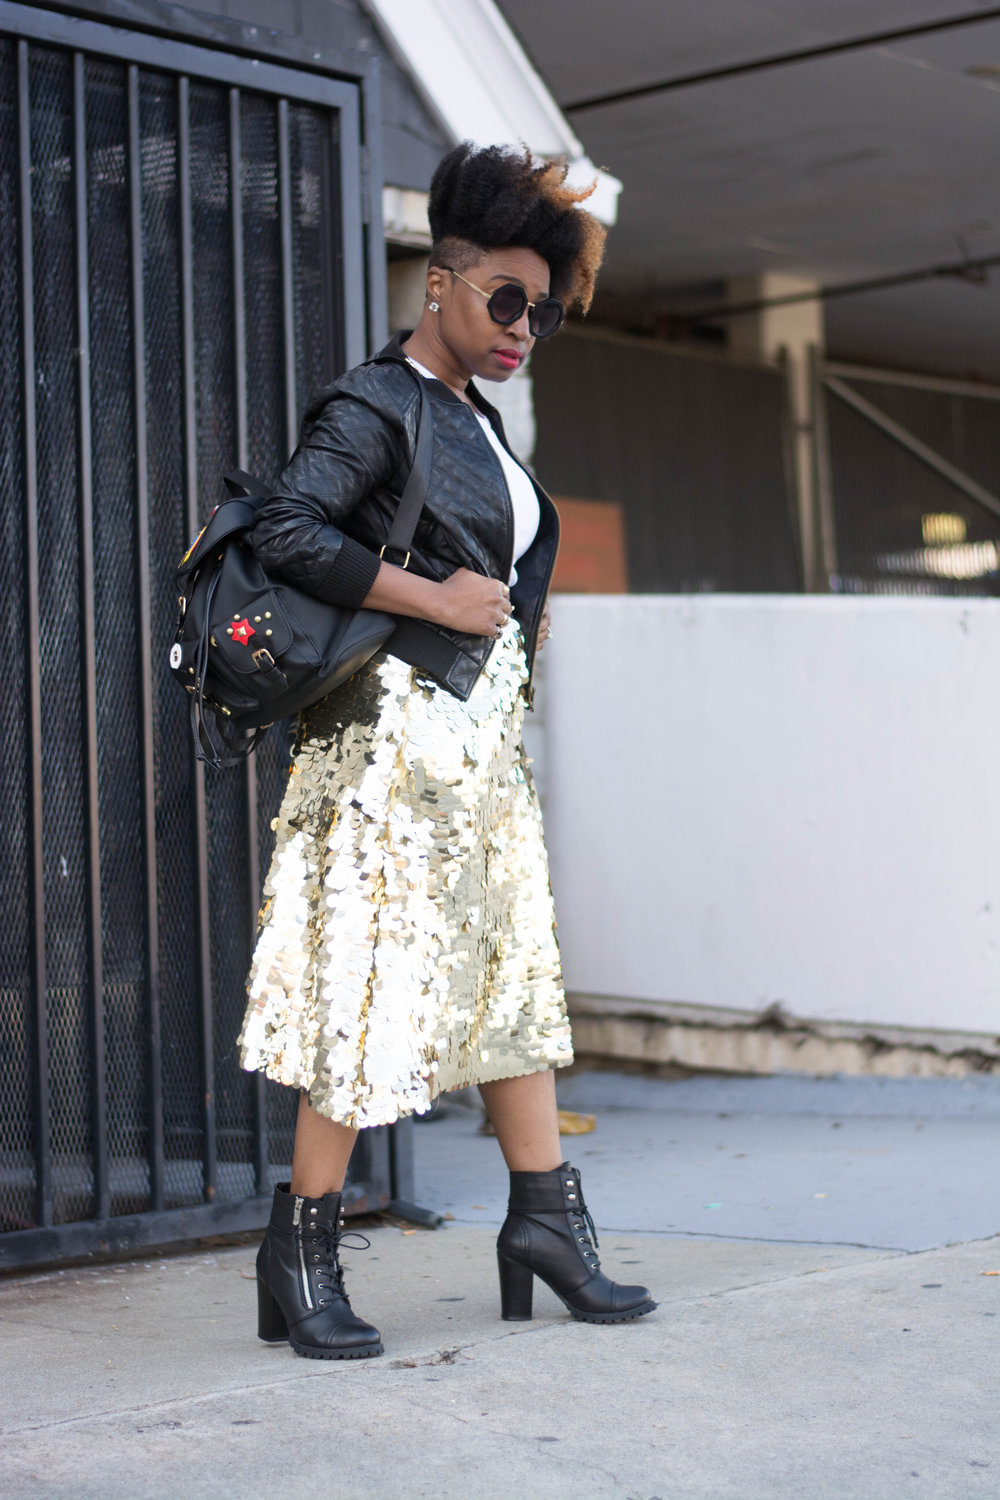 Sequin Skirt + Black Booties -